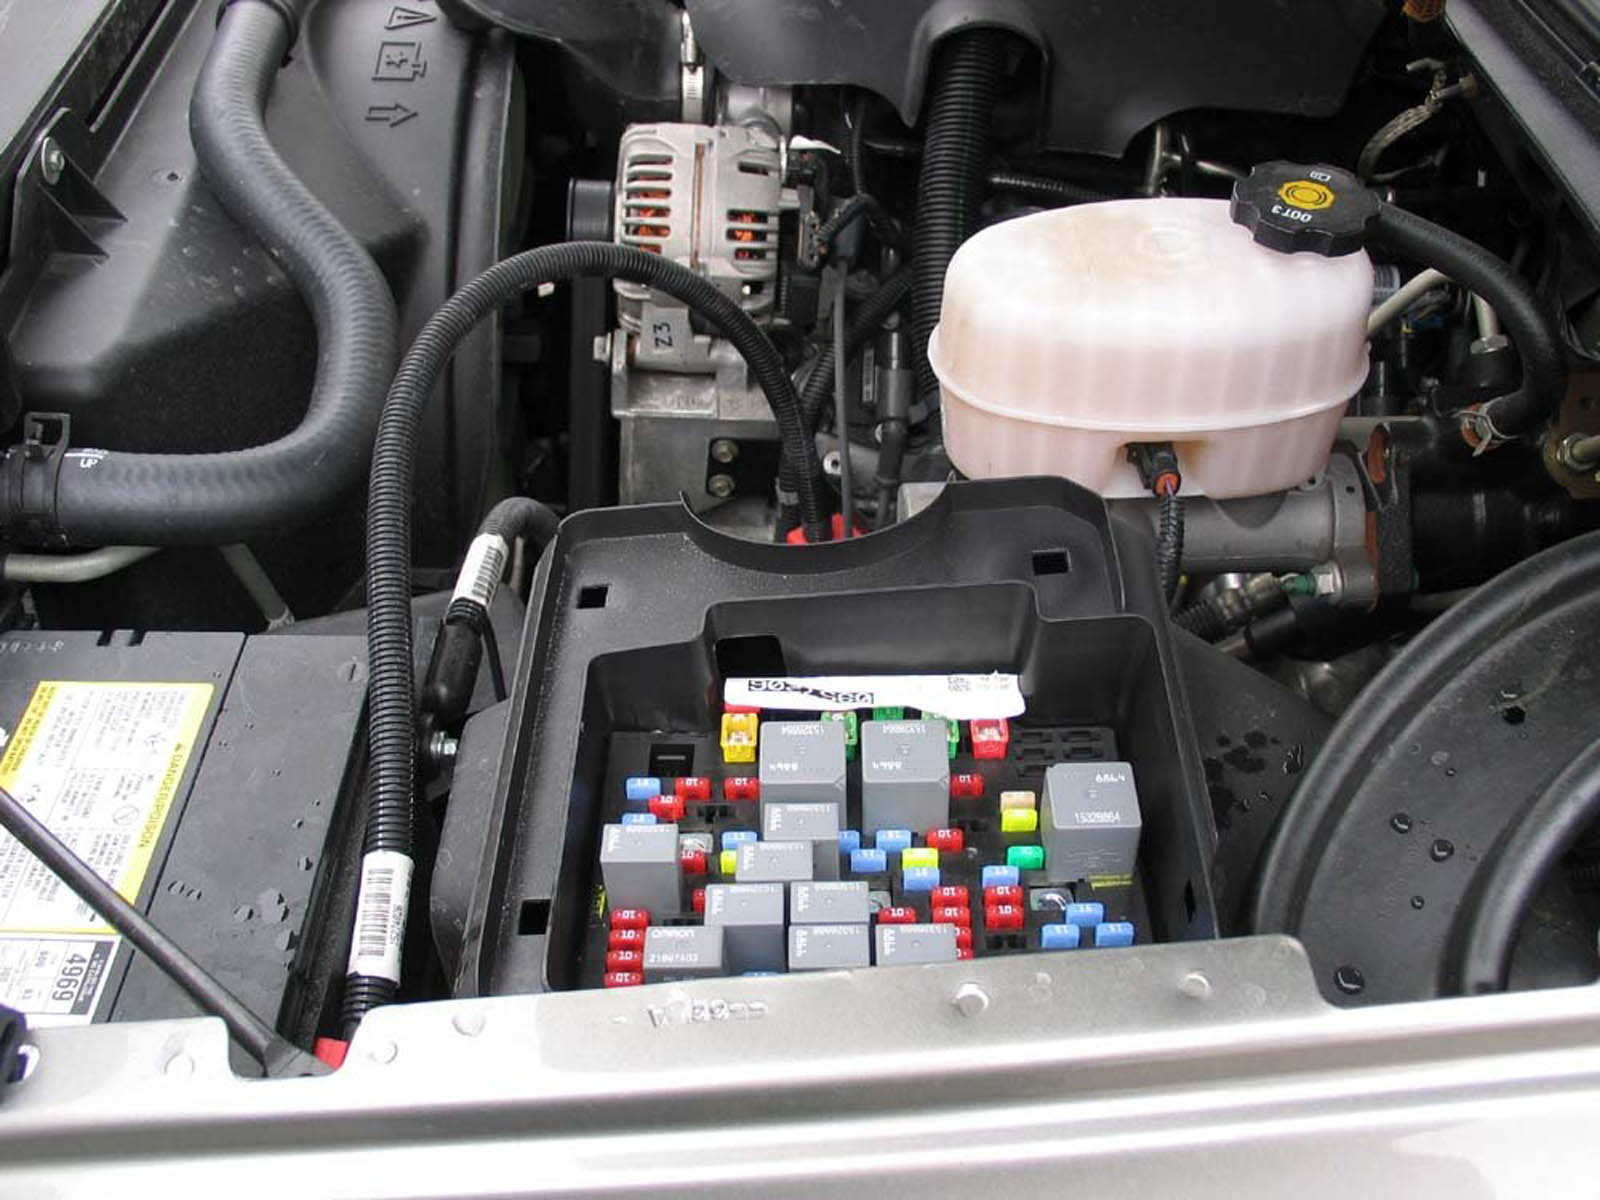 MMMay 27 Fuse Box 04 69845 chevrolet silverado gmt800 1999 2006 fuse box diagram chevroletforum chevrolet express 1500 fuse box at fashall.co